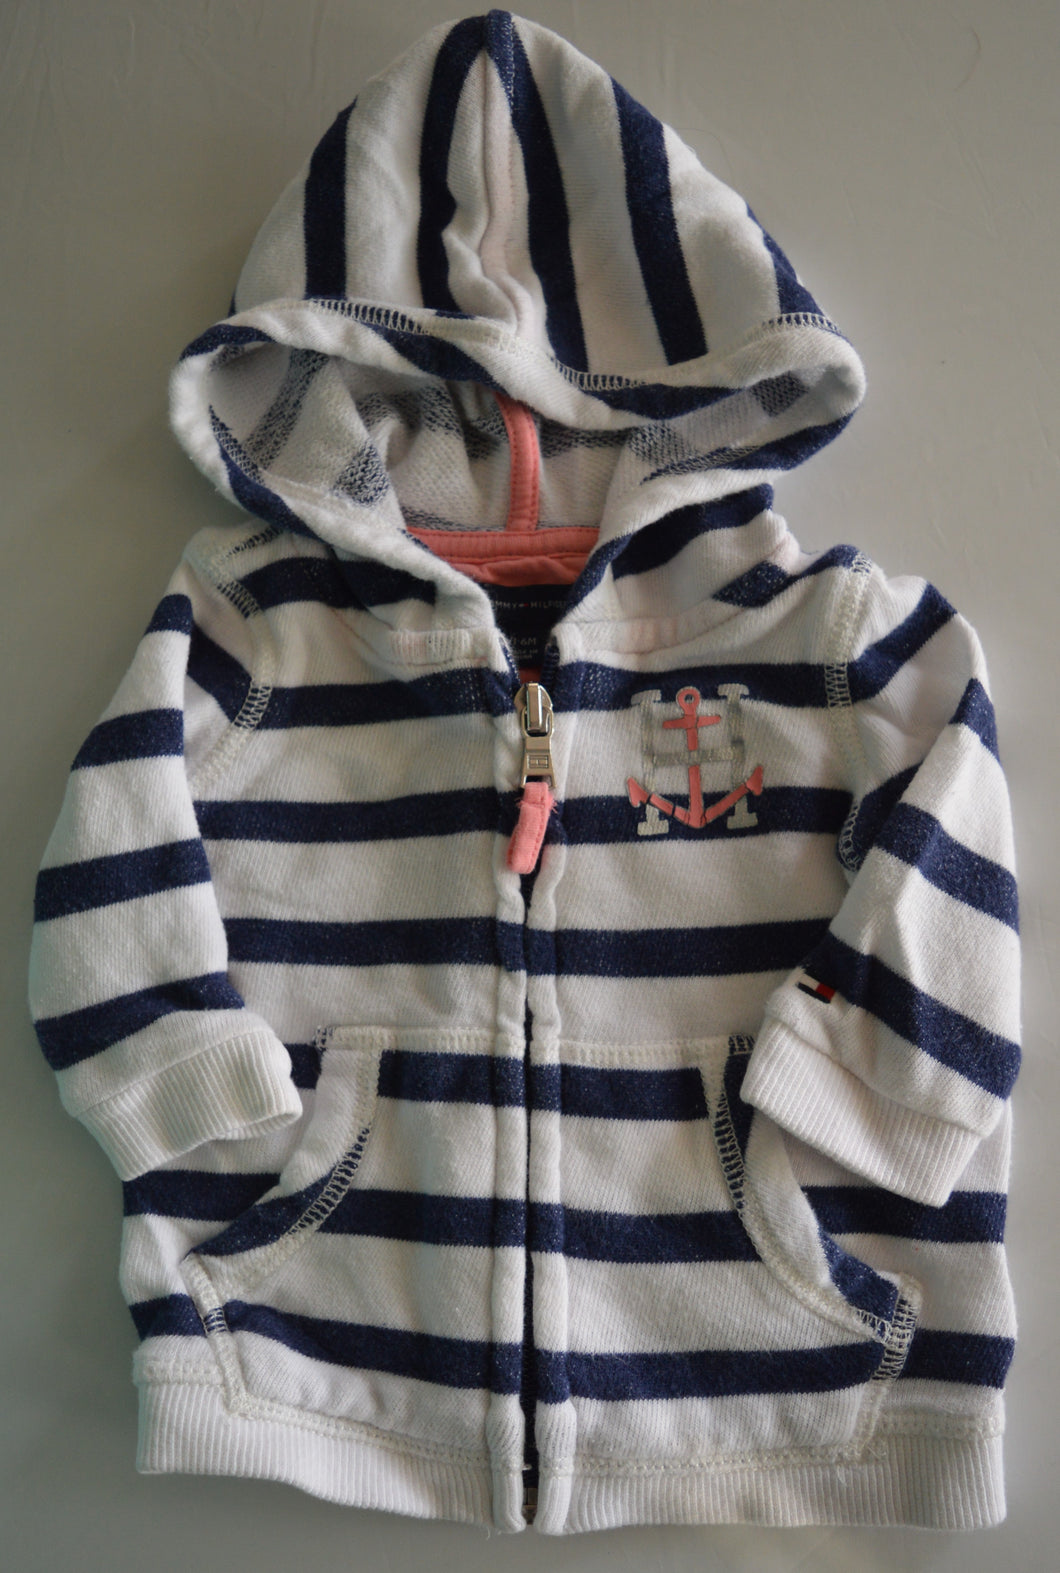 Tommy Hilfiger White with Blue Stripes Zip-up Hoodie